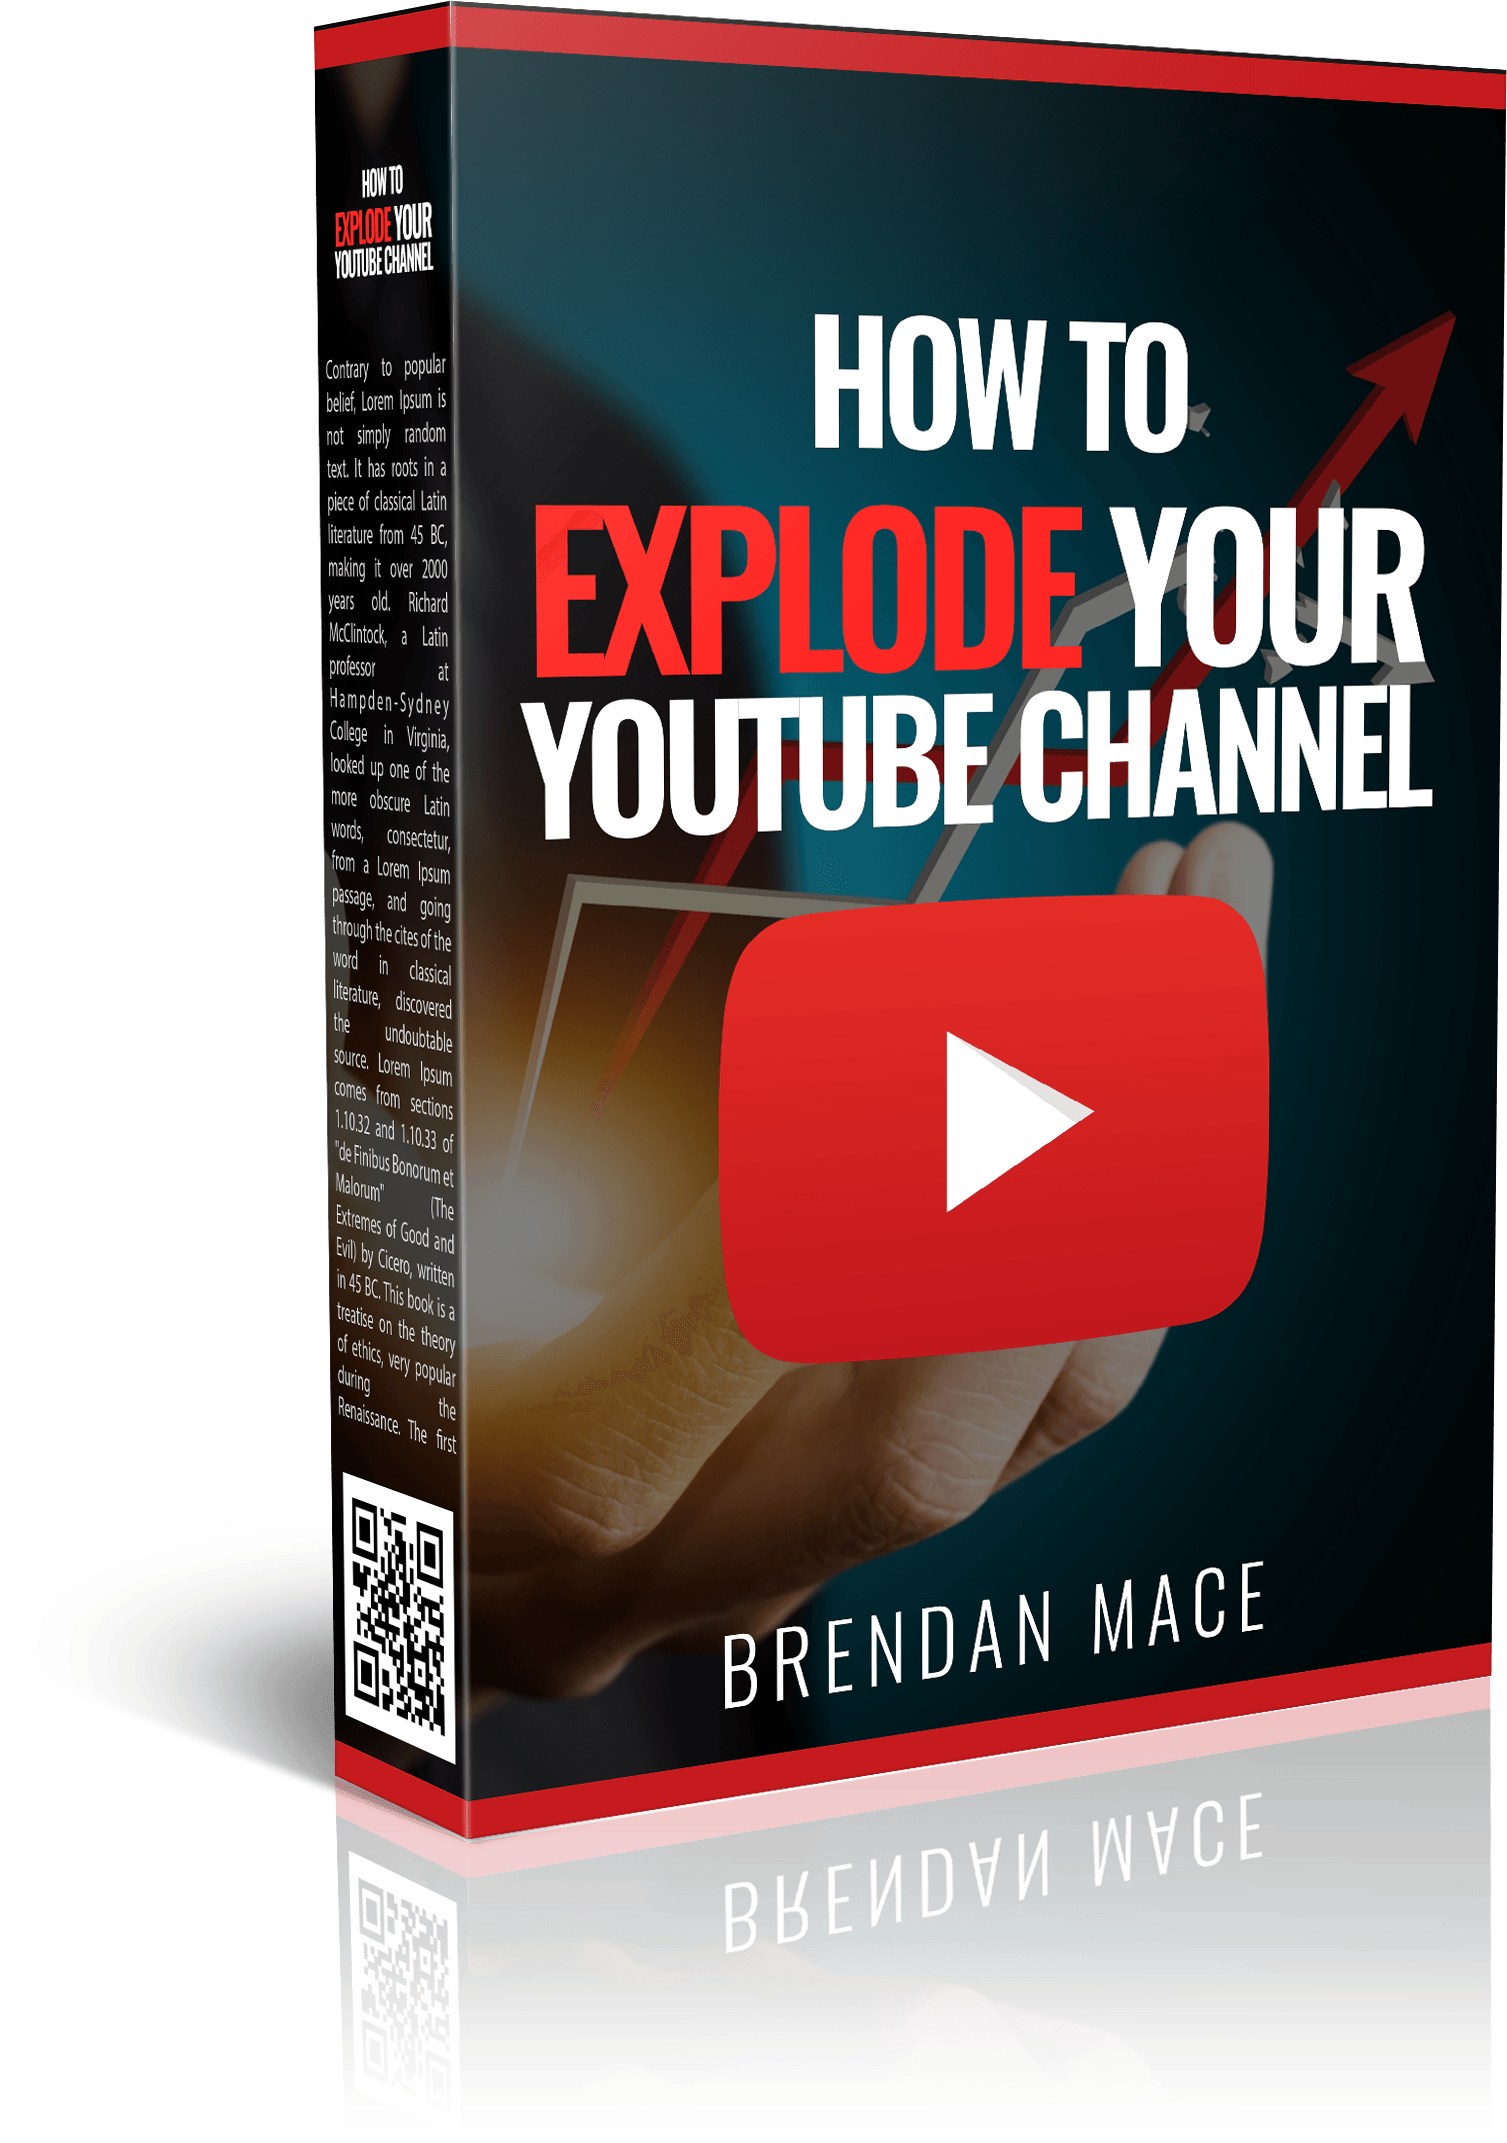 How to Explode your Youtube Channel